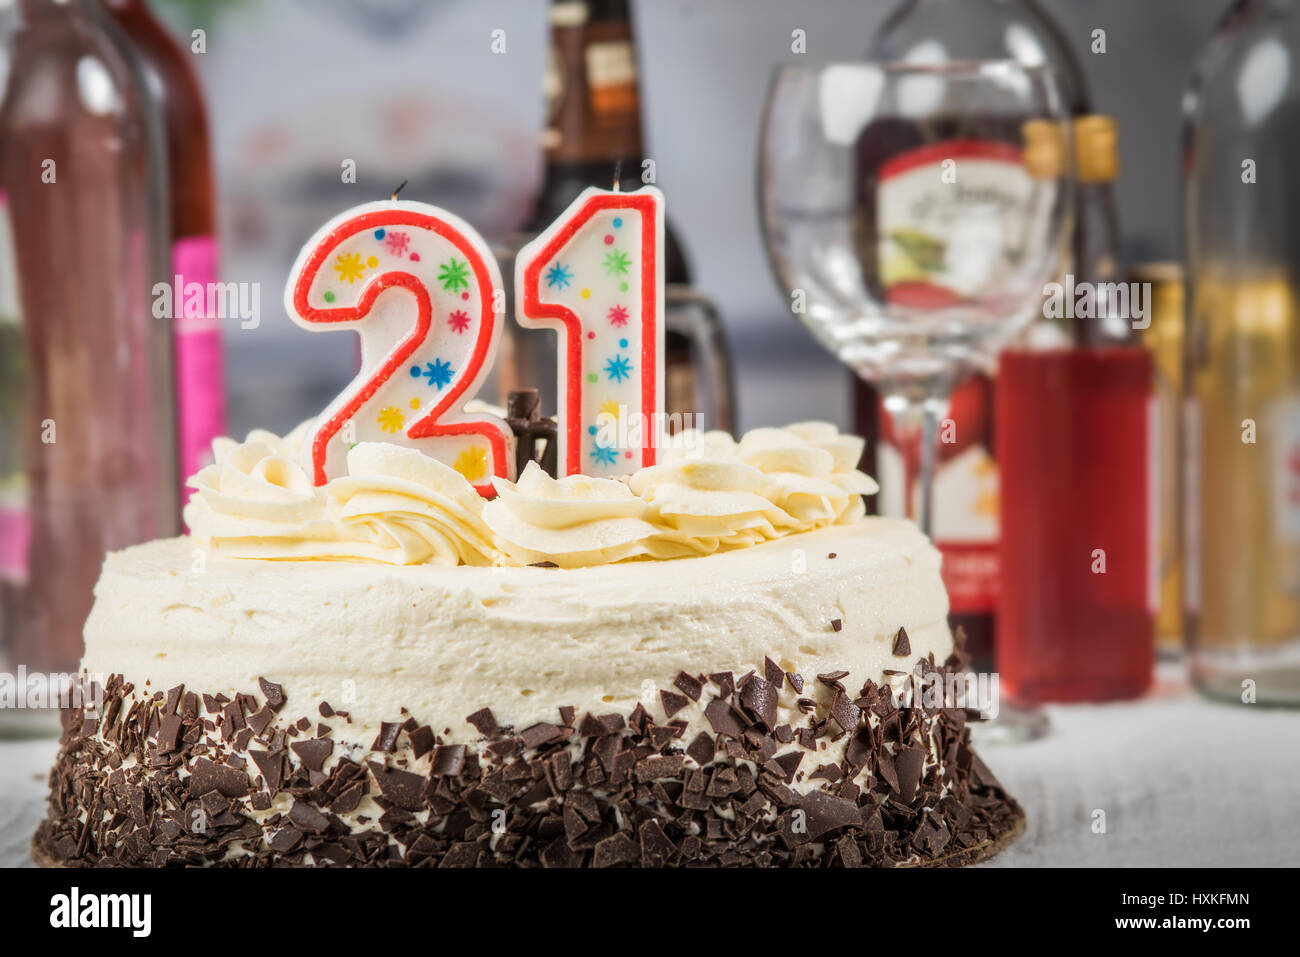 Cake With 21 Candle On It And Adult Beverages In Background